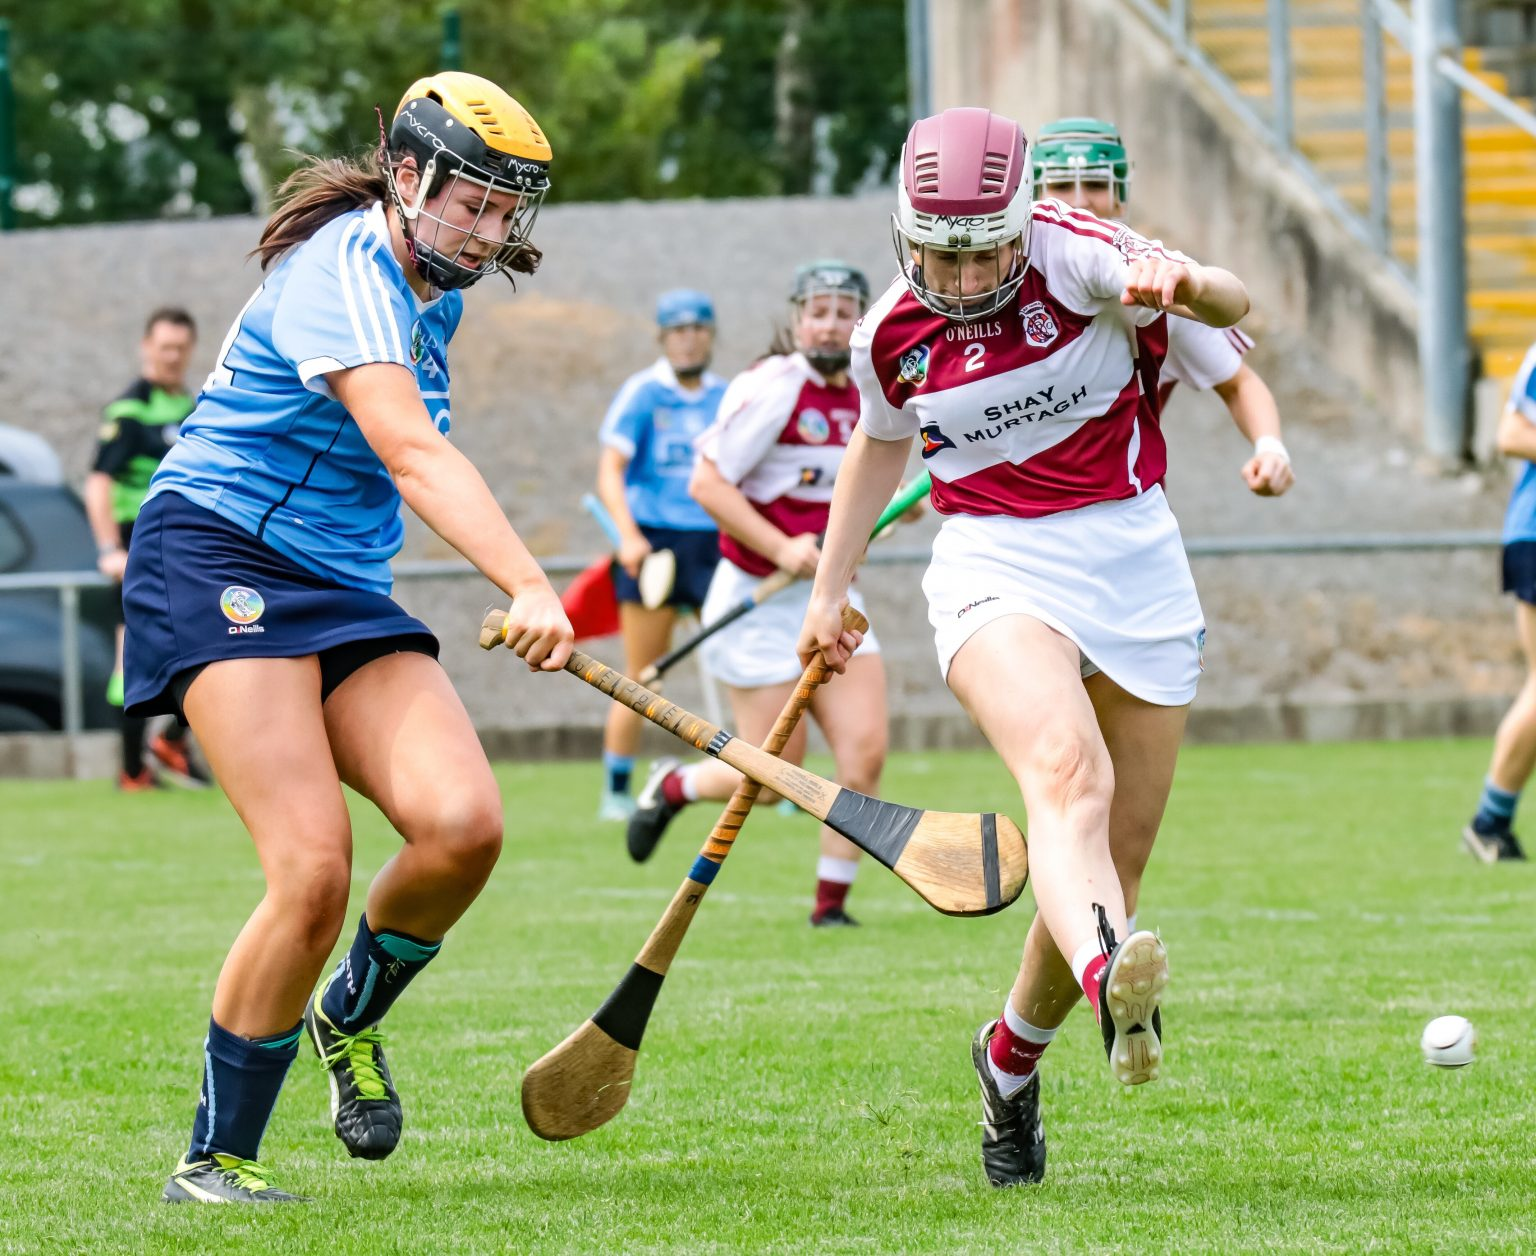 A Westmeath Camogie Player kicks the ball away from a Dublin Player in a sky blue jersey in the final which Westmeath won to claim the Leinster title